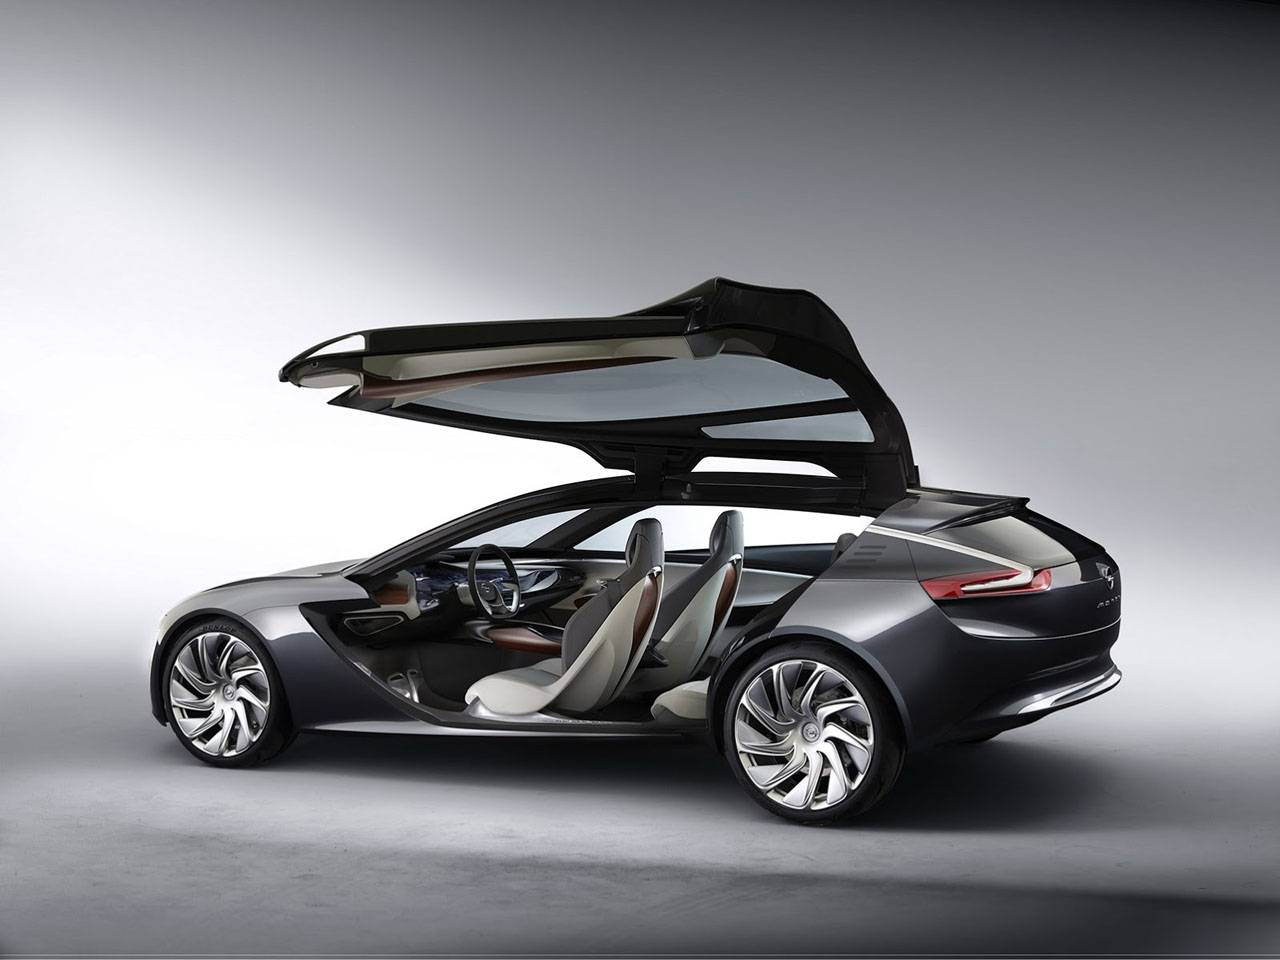 Opel-Monza-Coupe-concept-4